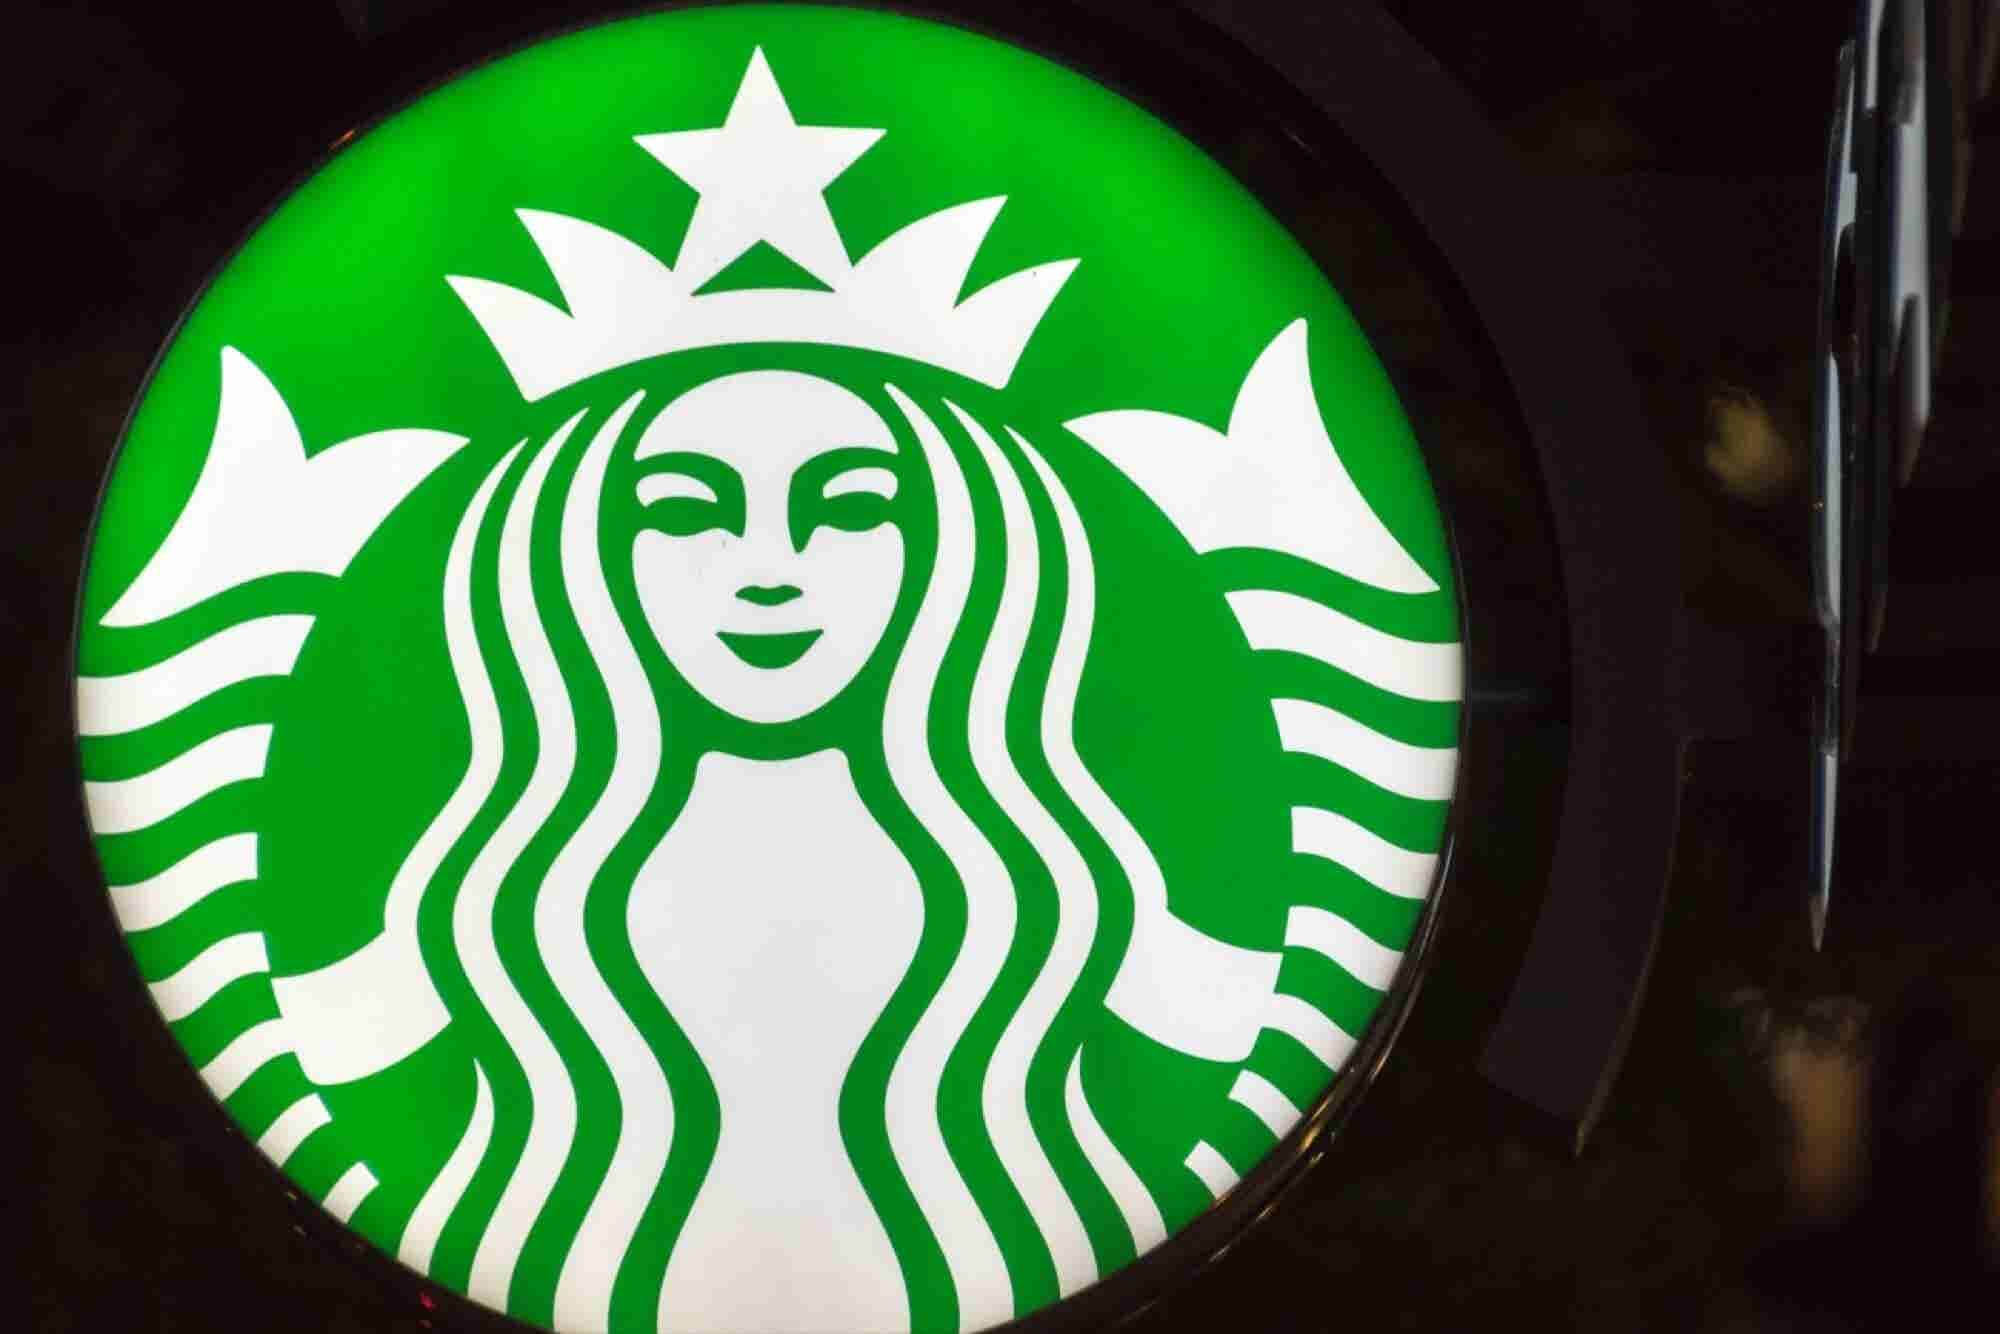 Starbucks, Anheuser-Busch to Partner on Bottled Teavana Teas